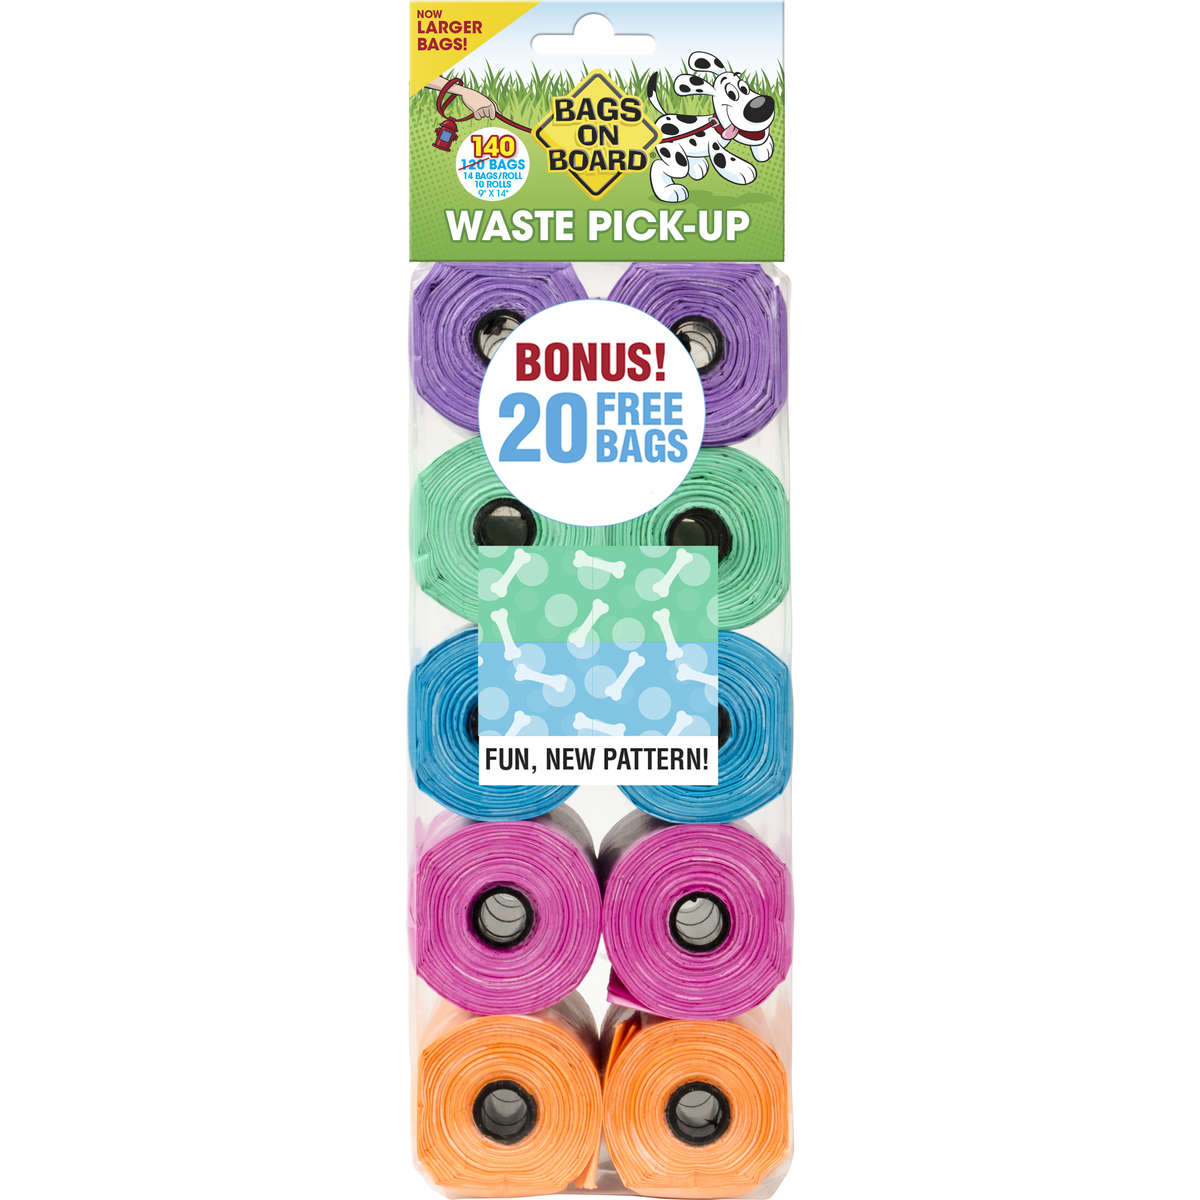 Fashion Print Waste Pick-Up Bags 140 count - Johnny's Pet Supply